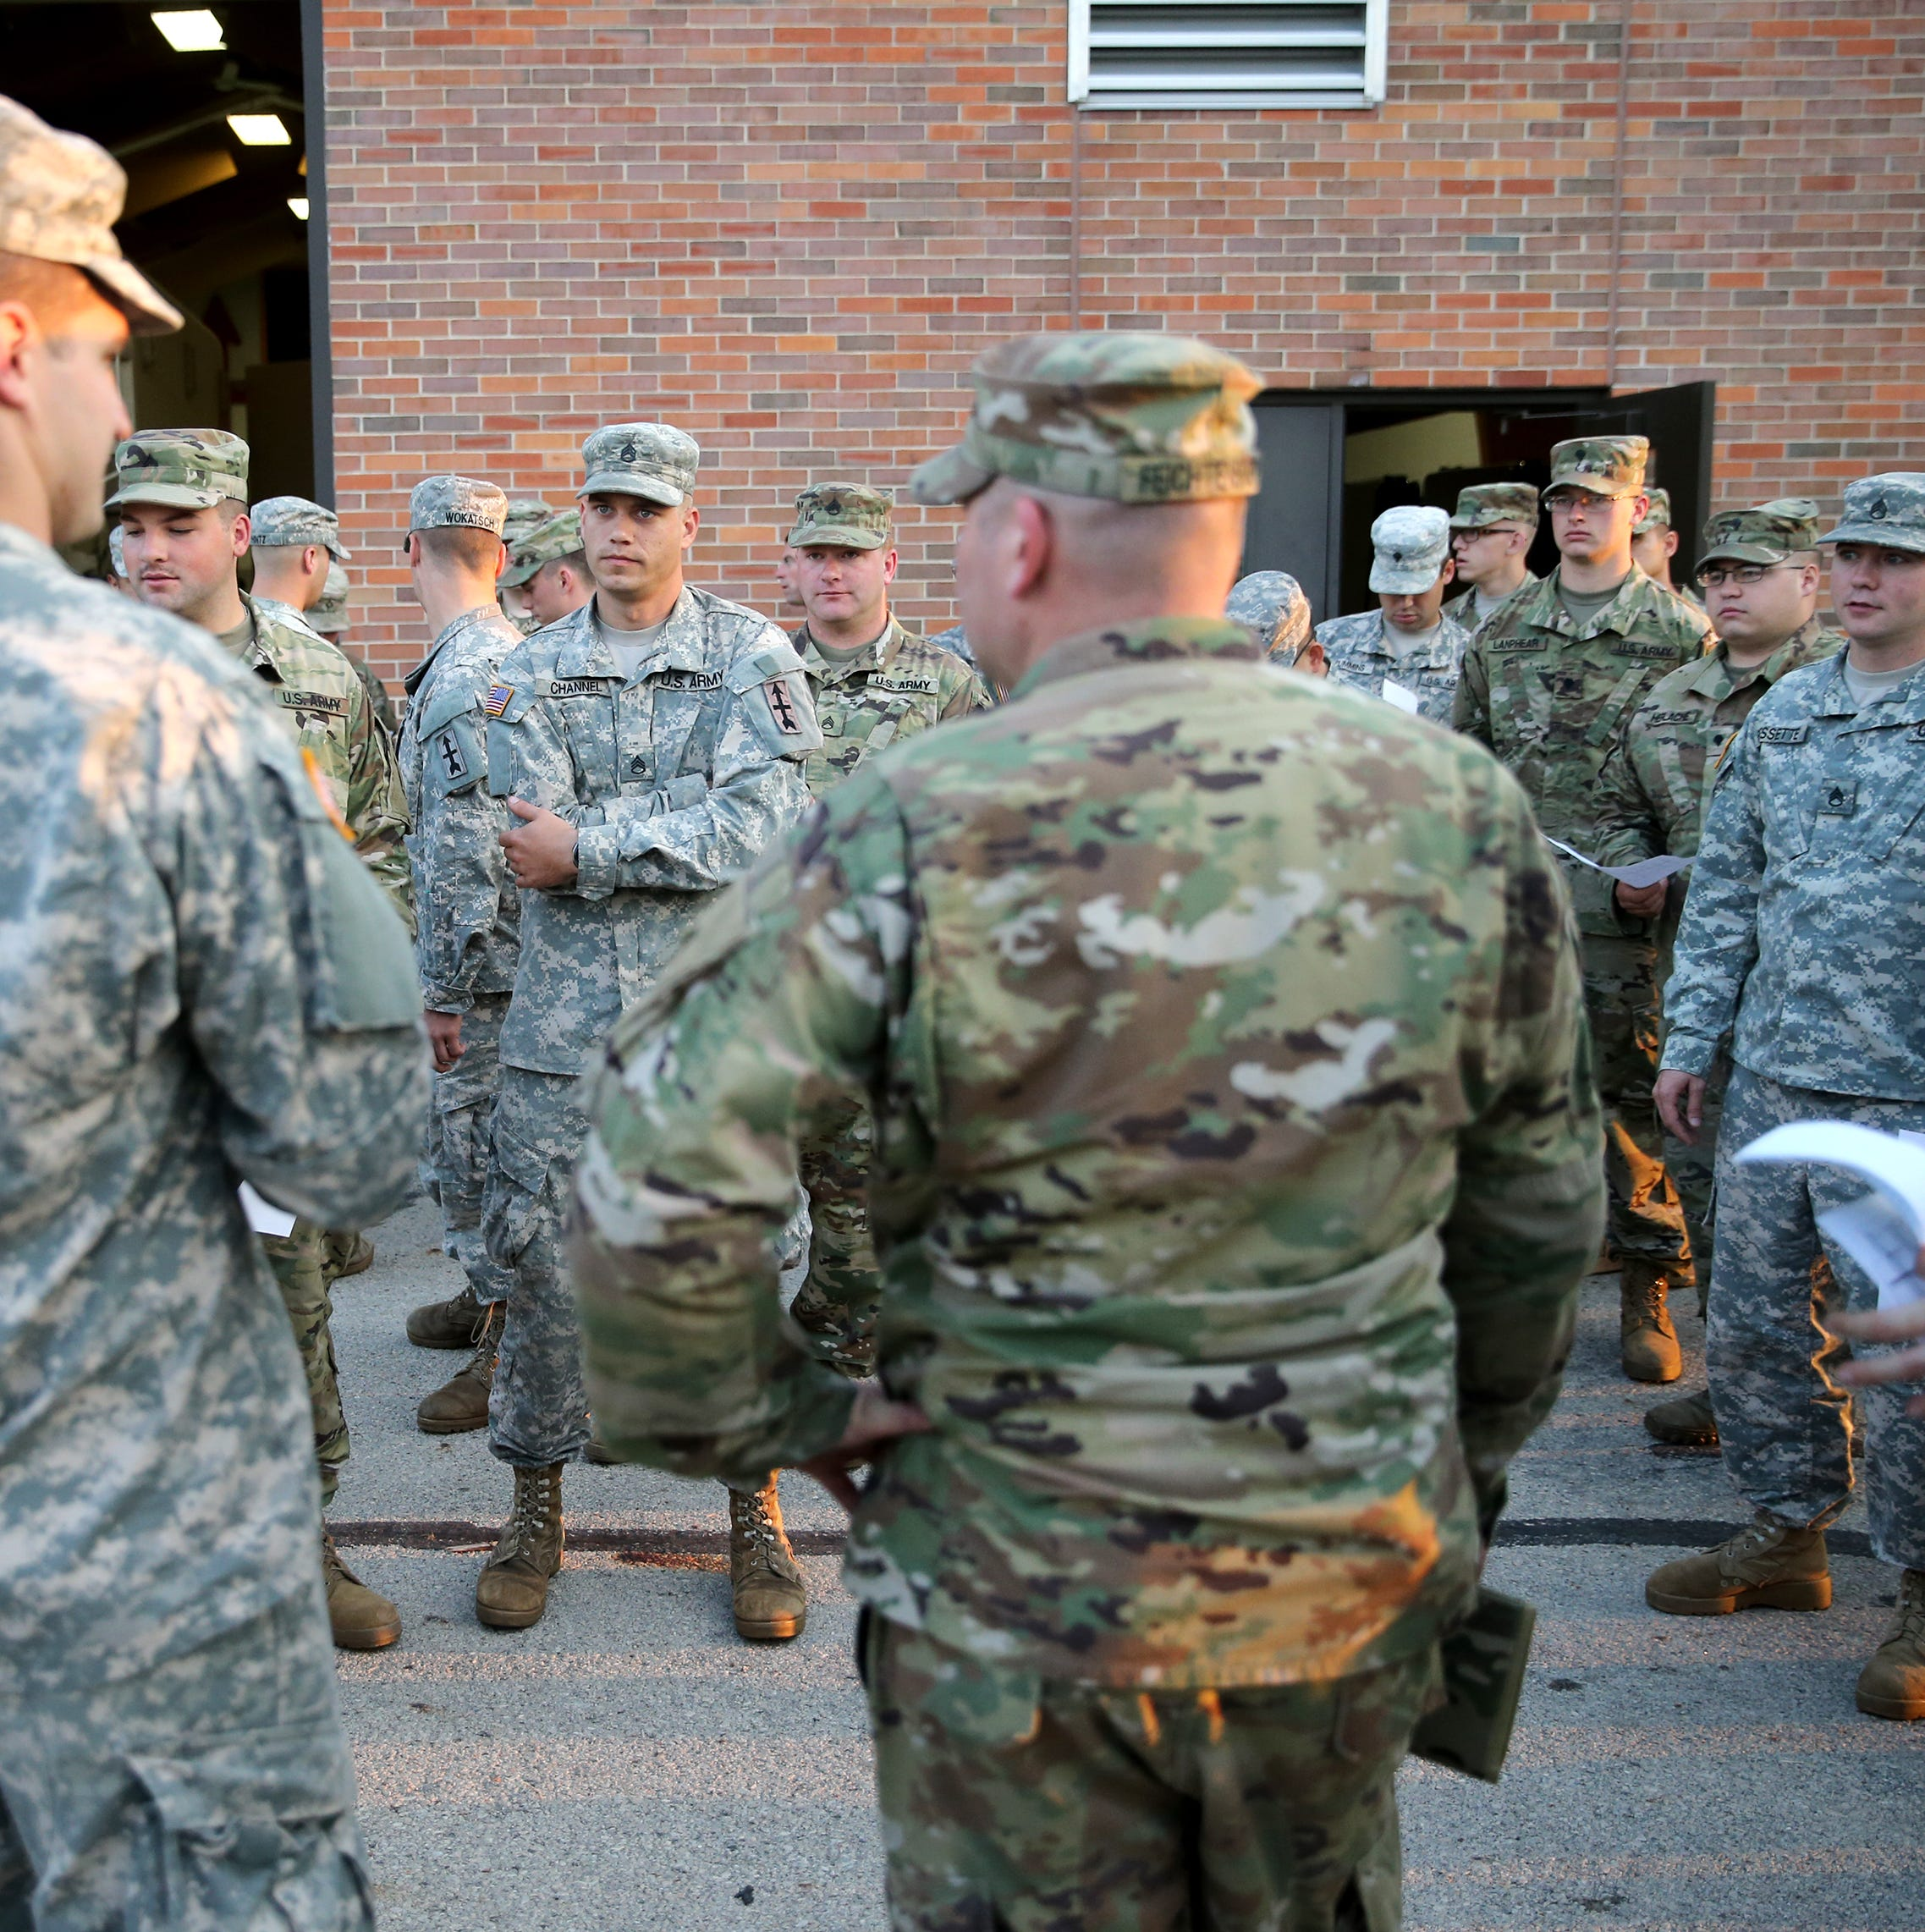 One quarter of Wisconsin National Guard units don't meet Army standards, reports show